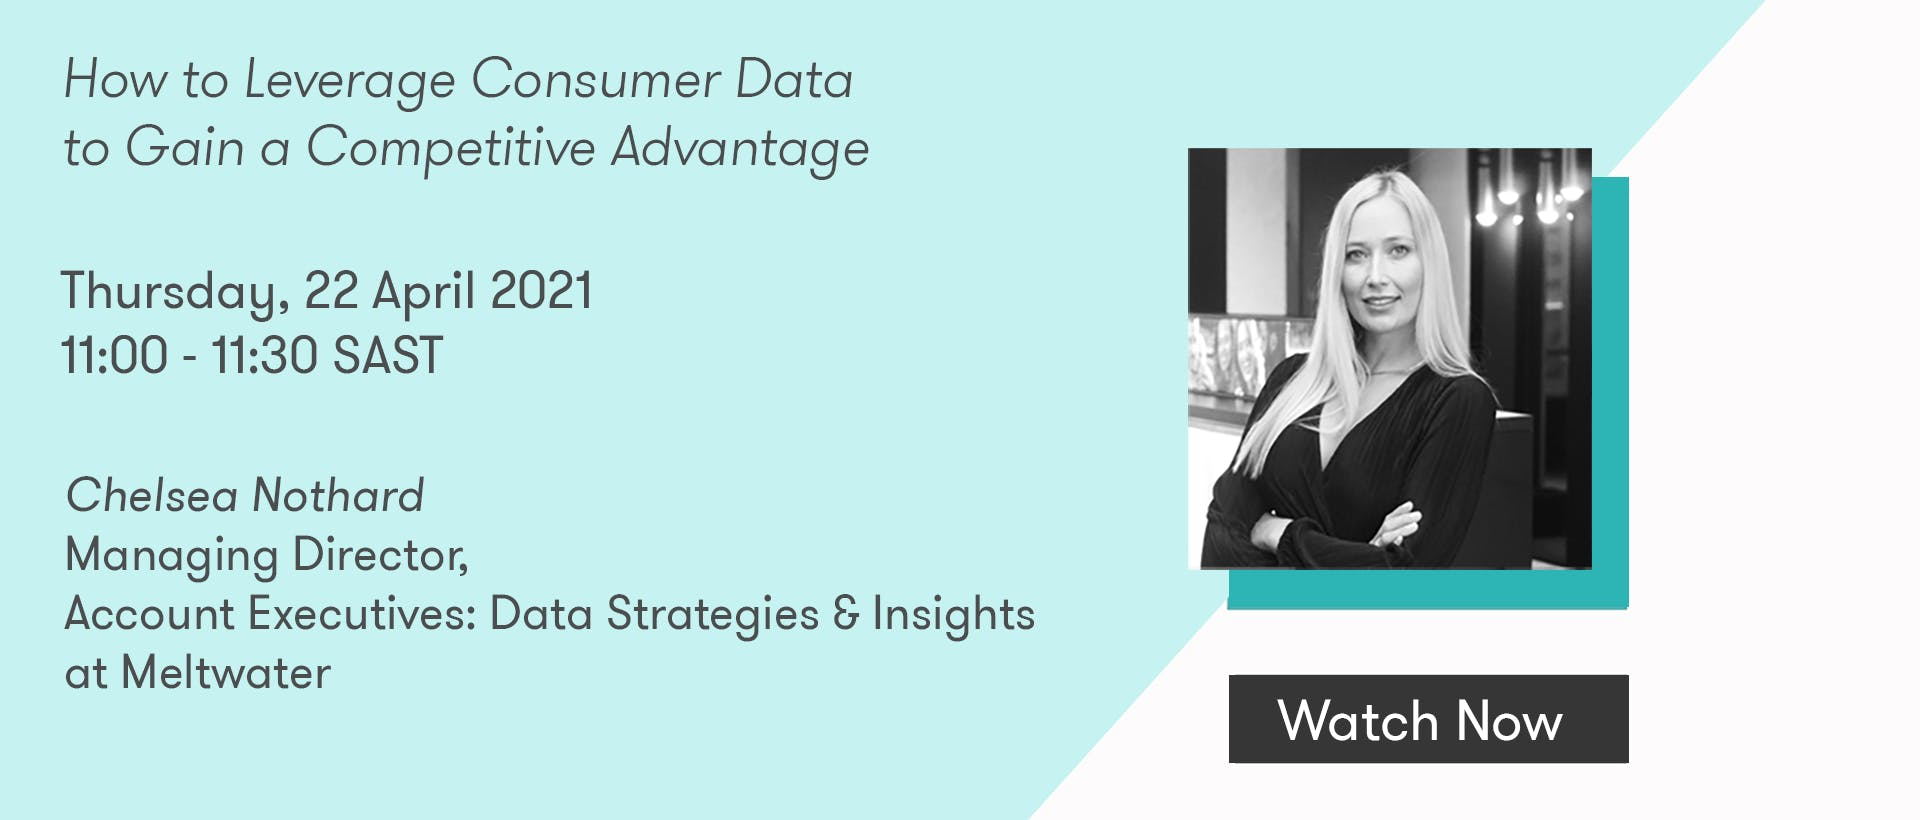 meltwater webinar on how to leverage consumer data to gain a competitive advantage